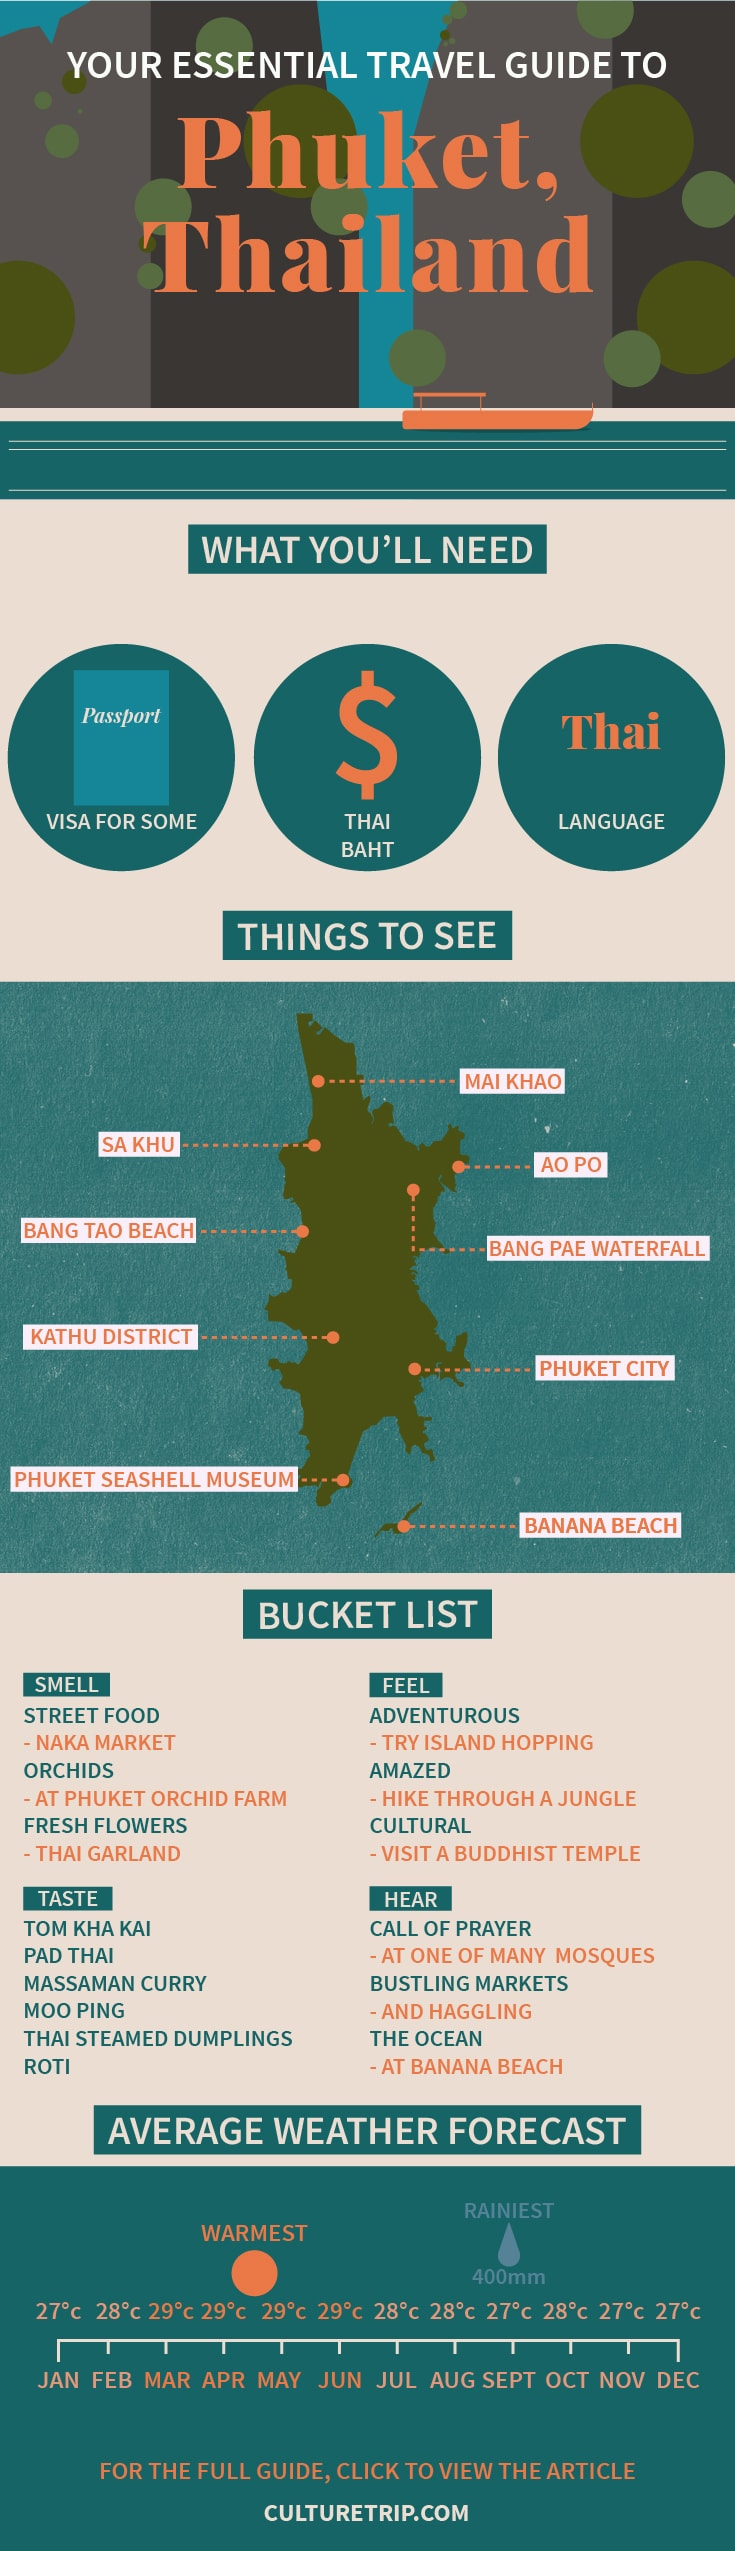 A travel guide for planning your trip to Phuket, Thailand.